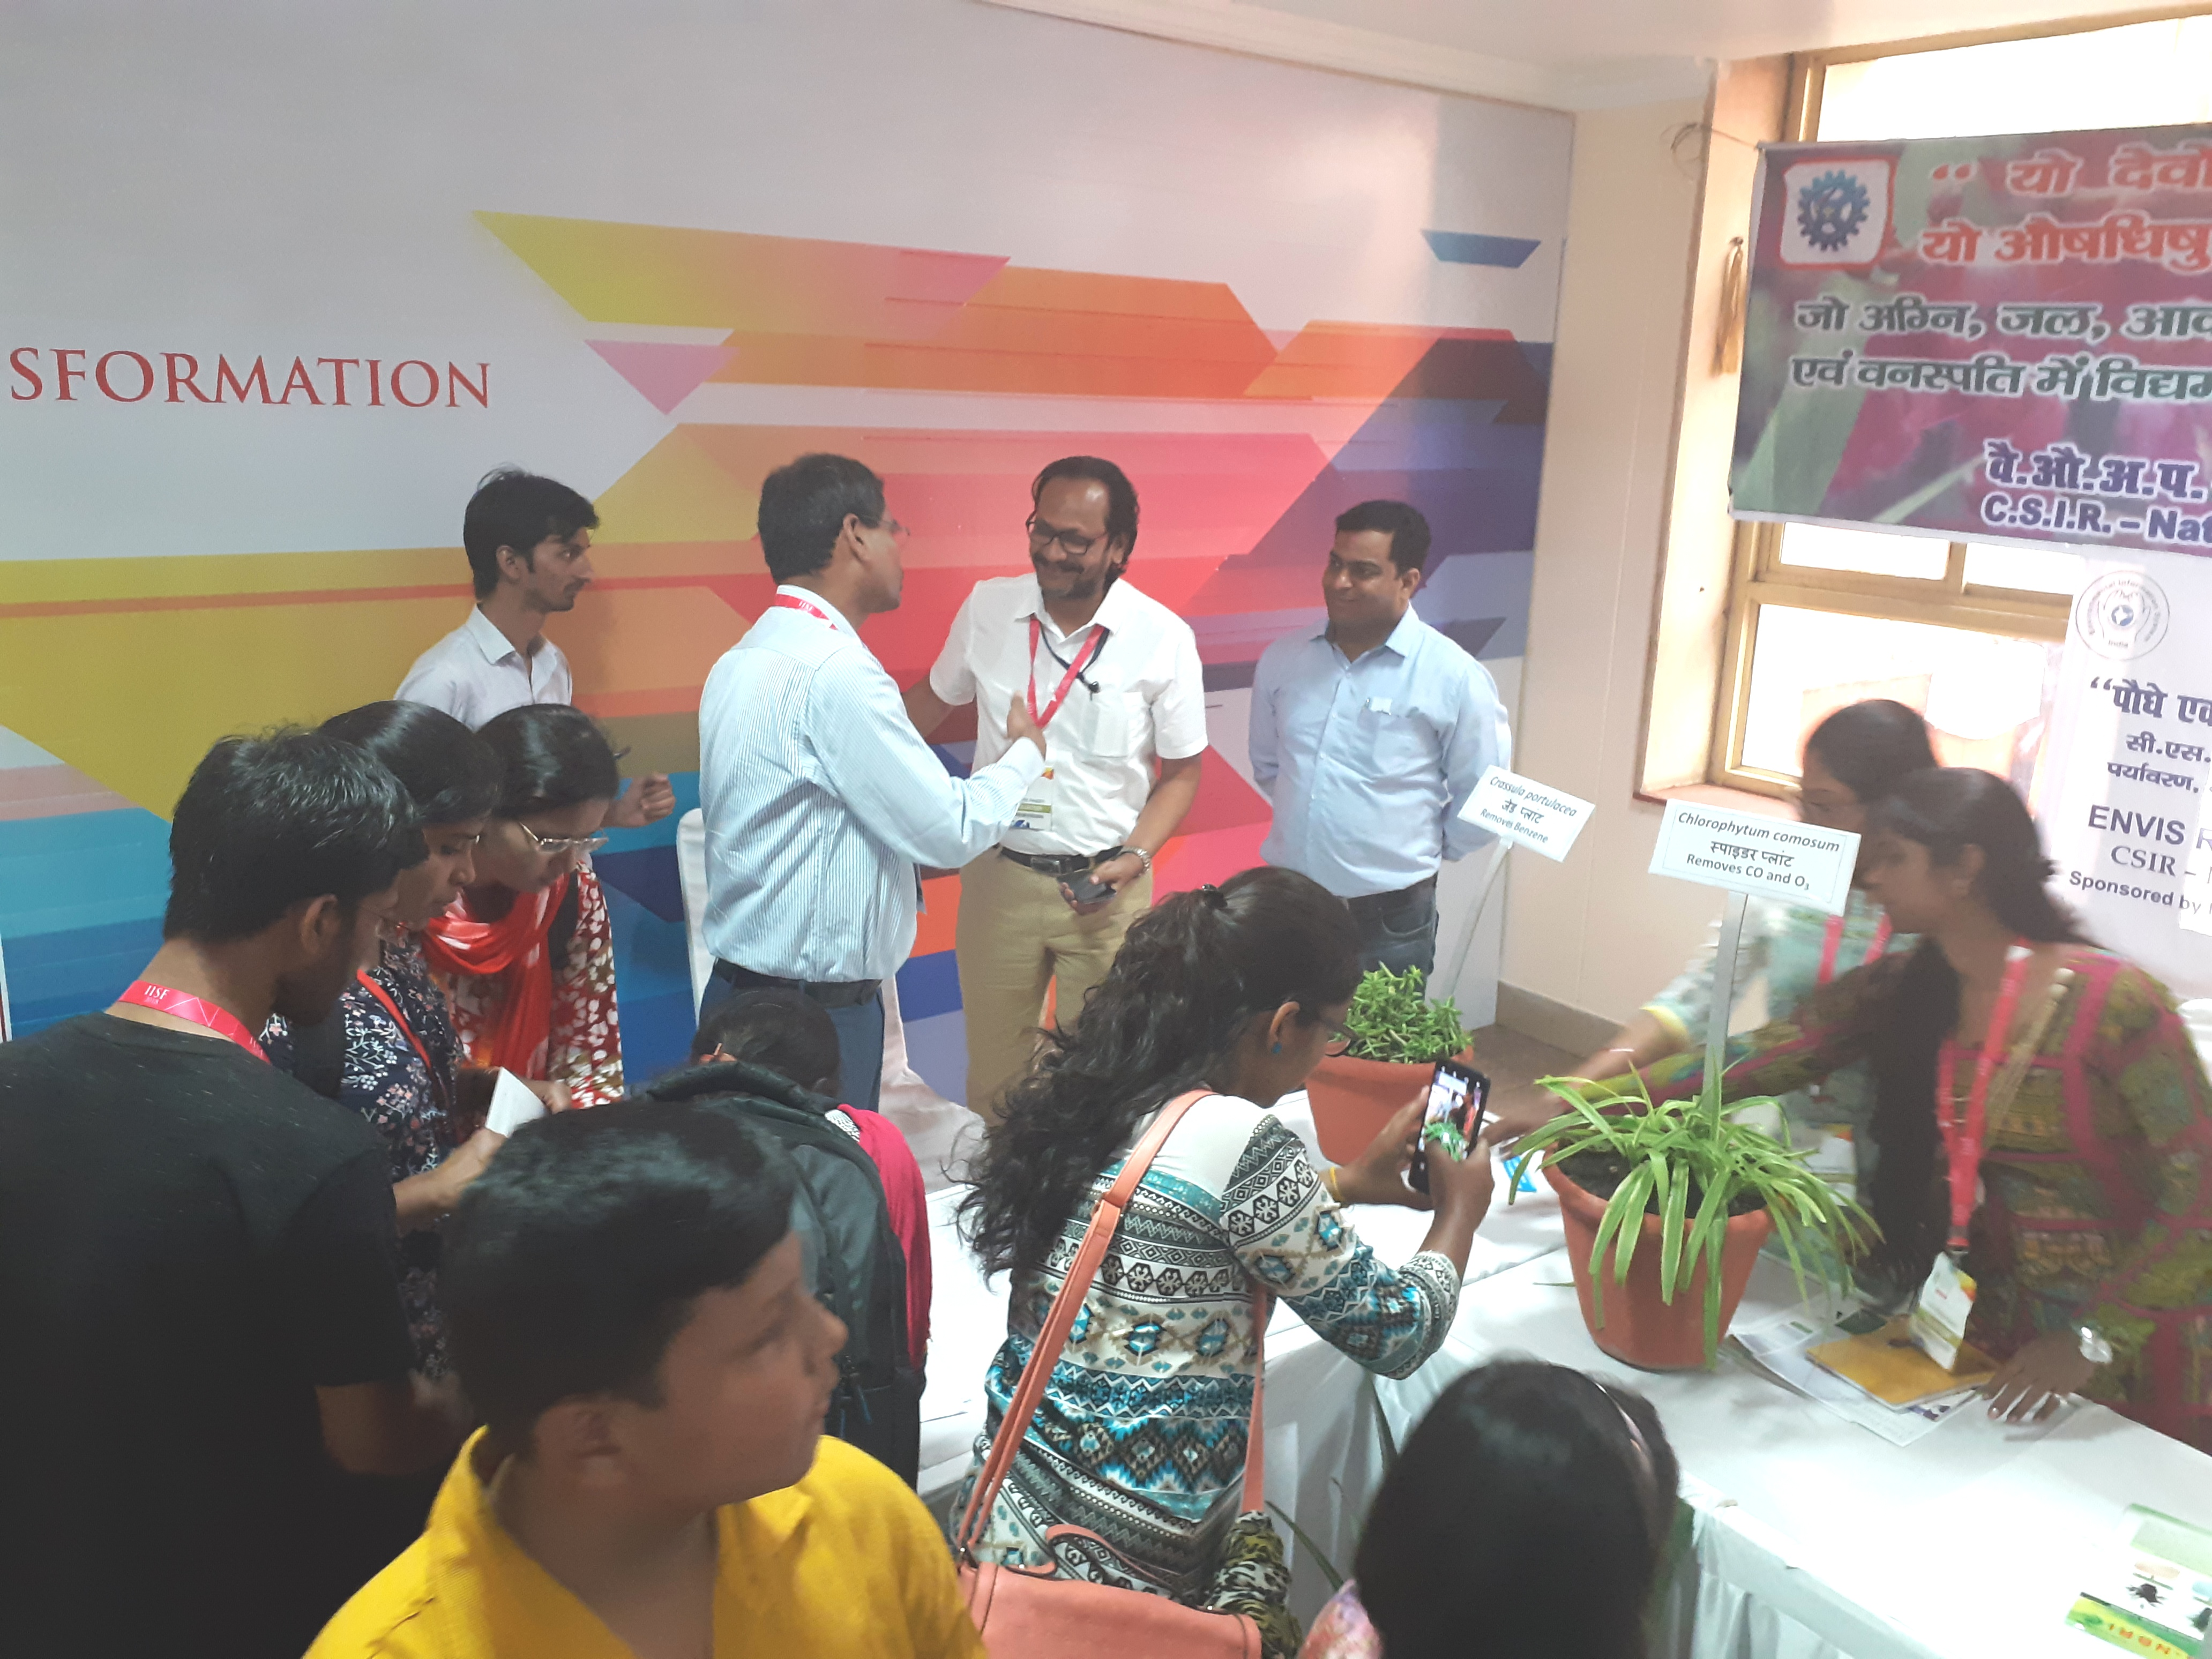 ENVIS-NBRI Stall on IISF, Lucknow on 07 Oct 2018